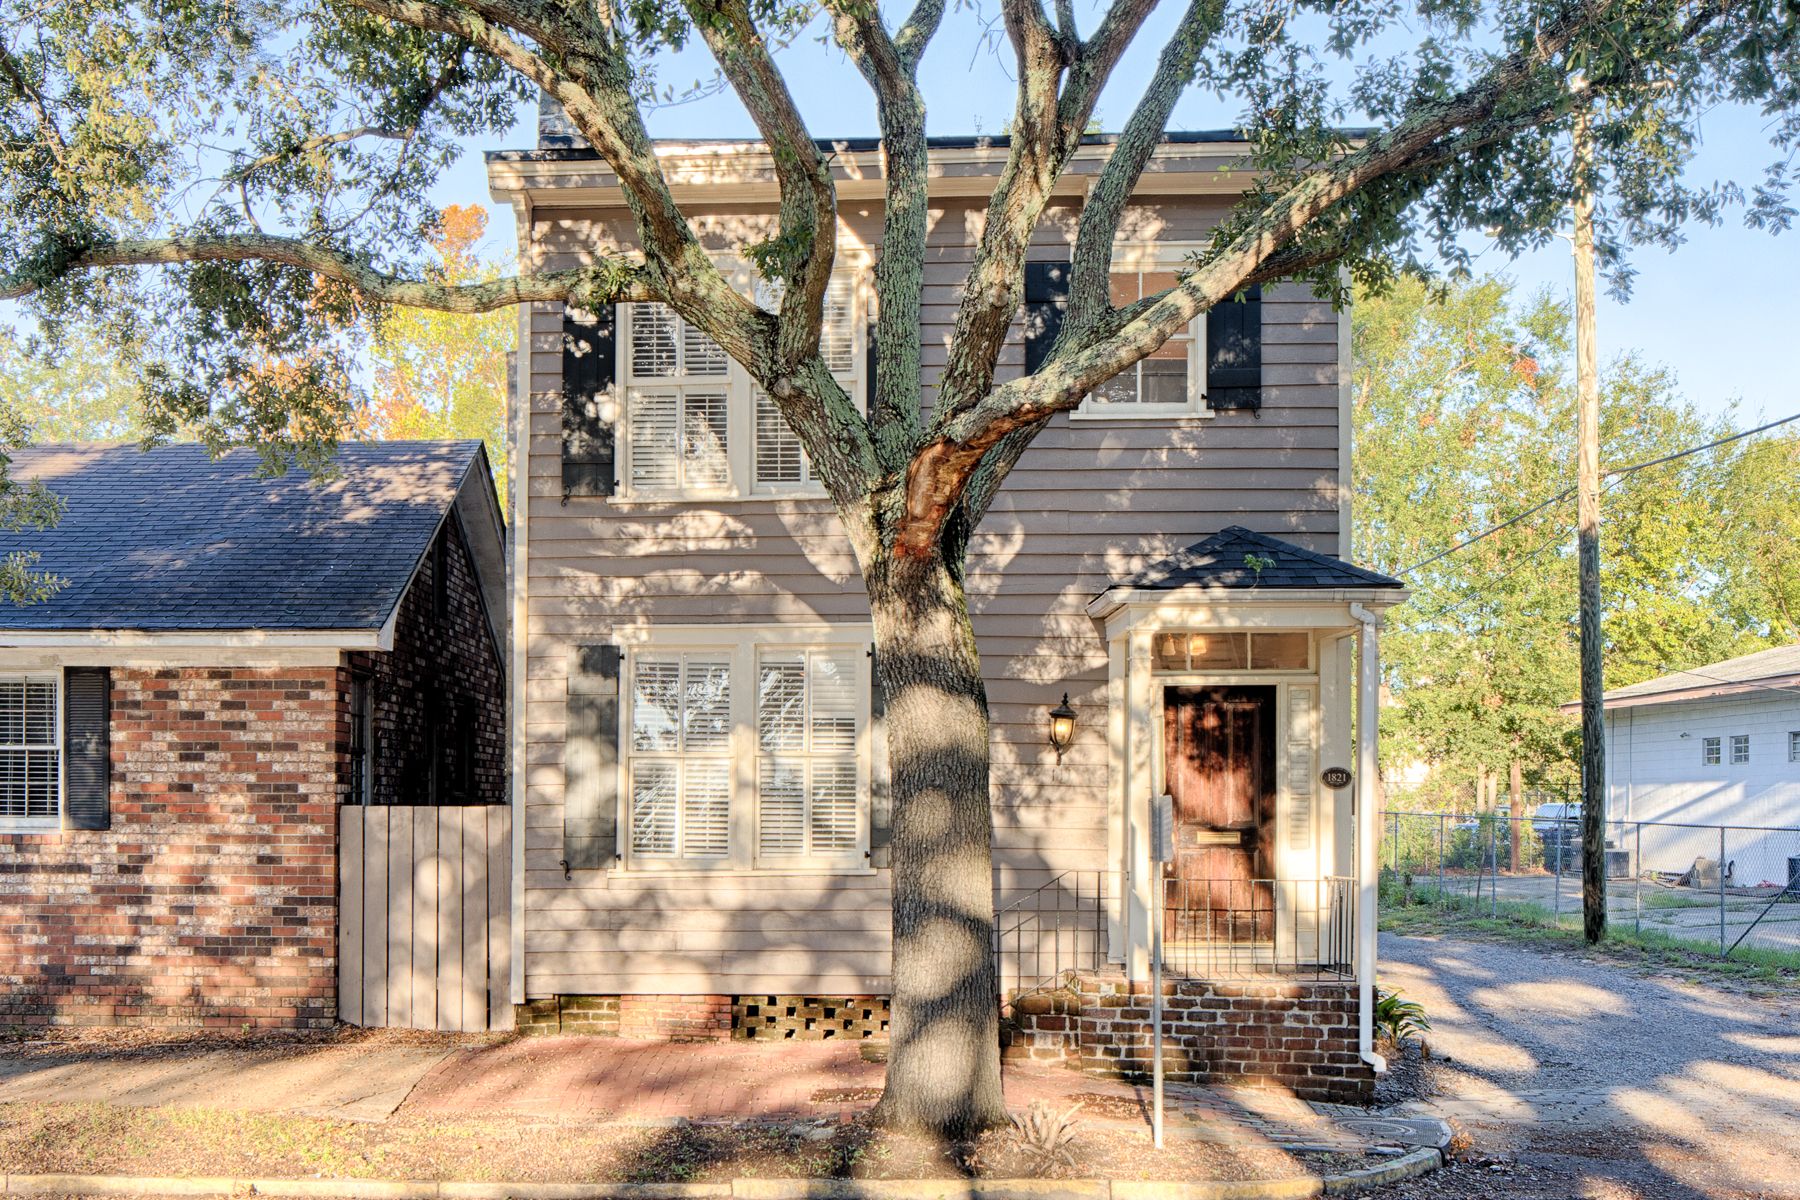 Single Family Home for Sale at 111 East Broad Street Historic District, Savannah, Georgia, 31401 United States